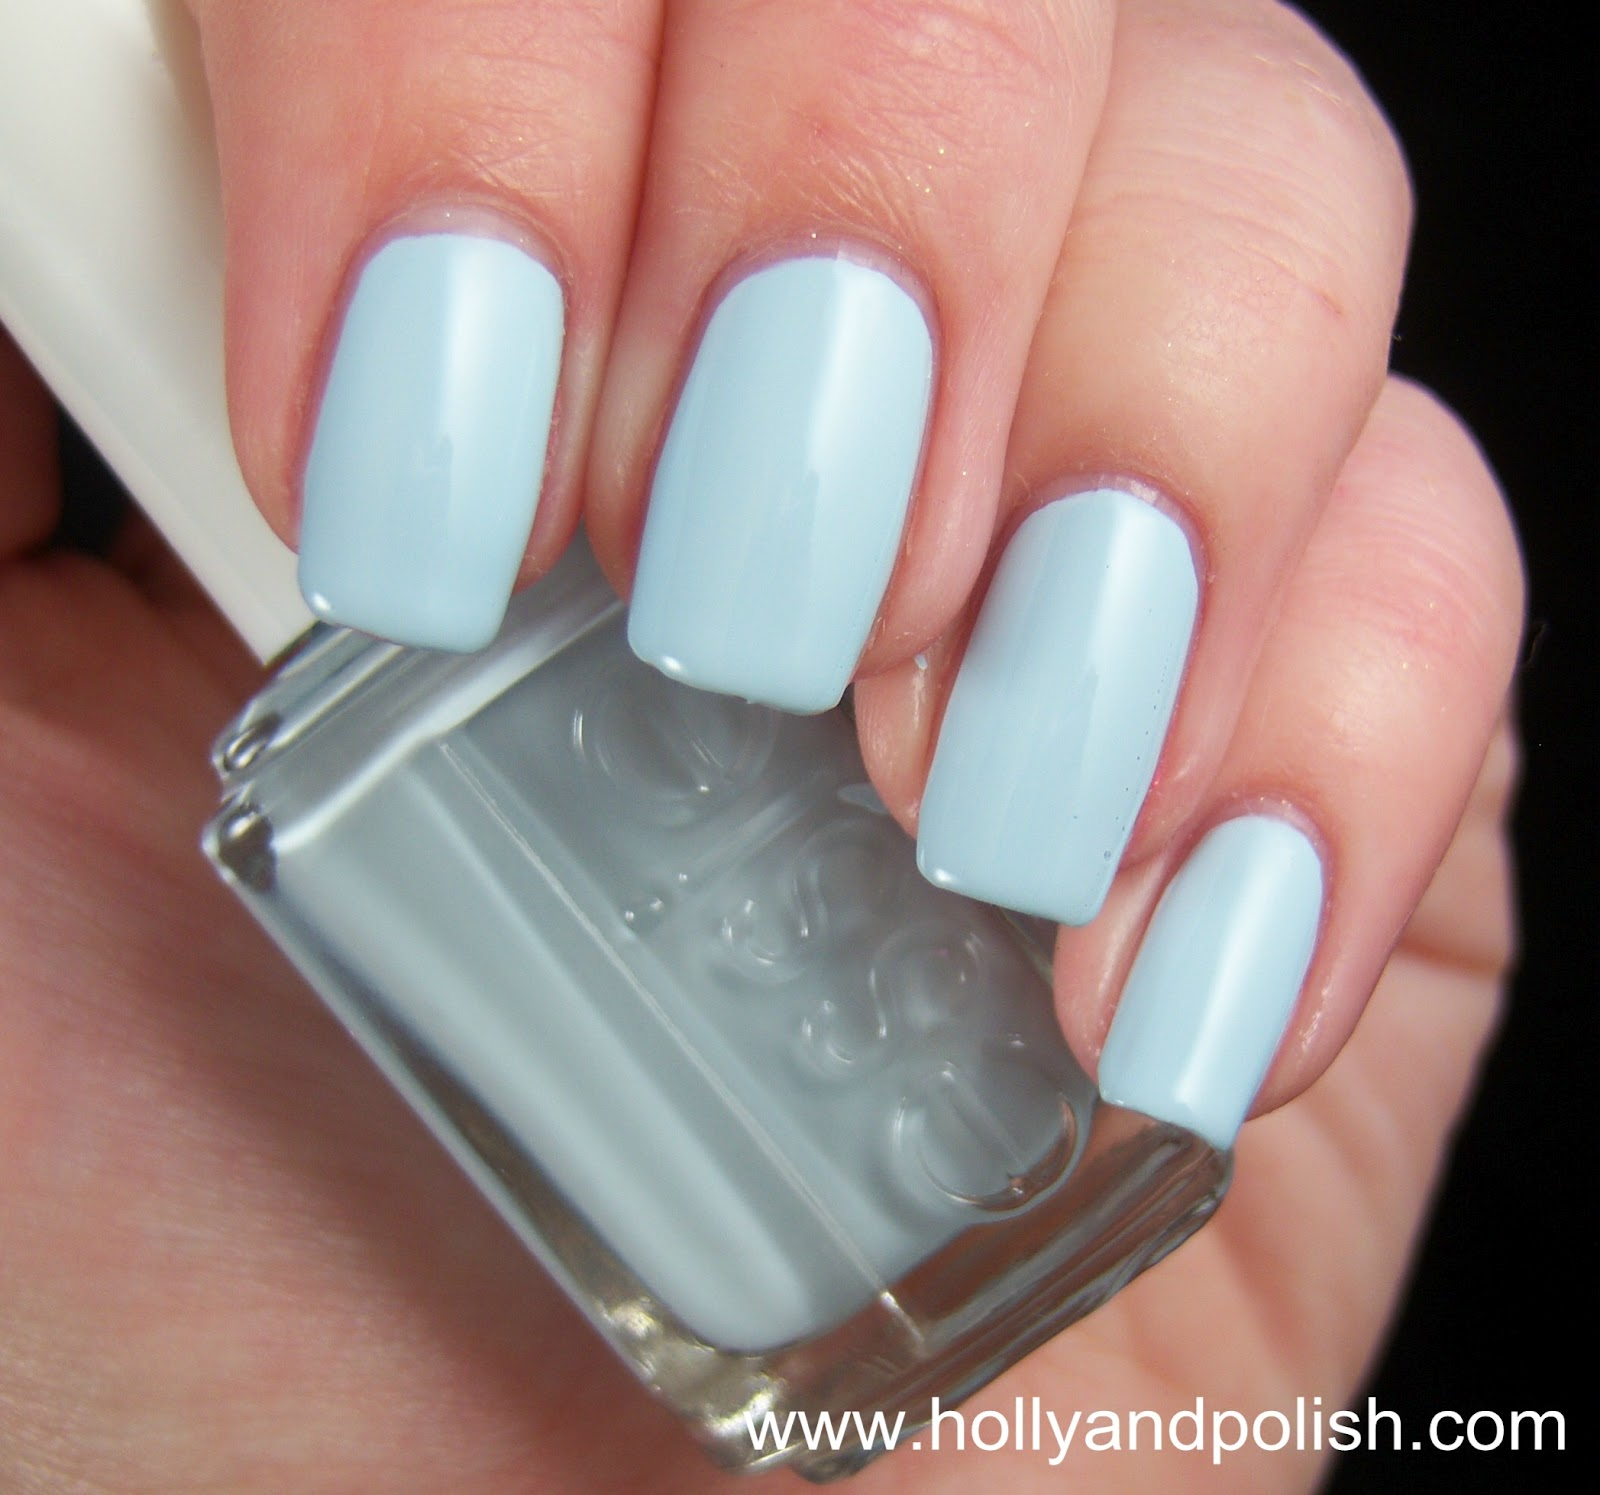 Holly and Polish: A Nail Polish and Beauty Blog: Essie Borrowed and Blue